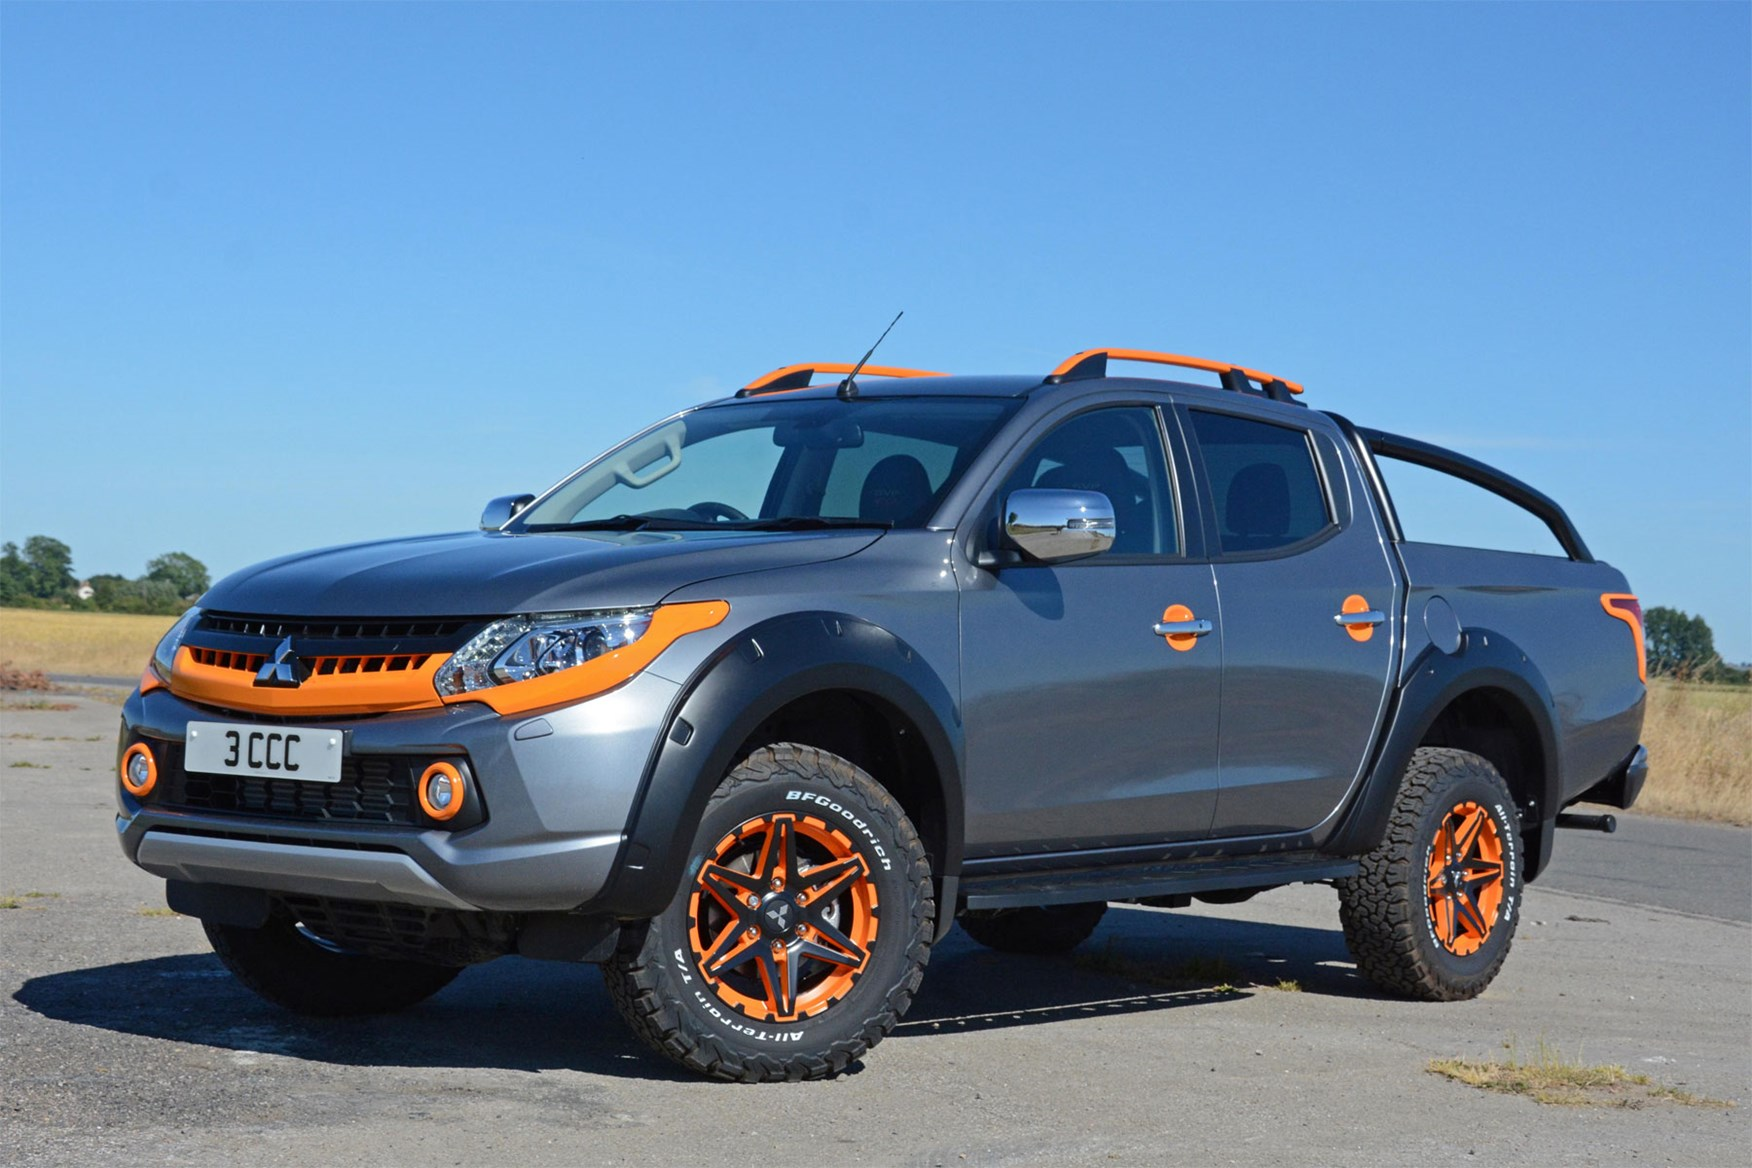 hight resolution of mitsubishi l200 barbarian svp ii review front view grey and orange